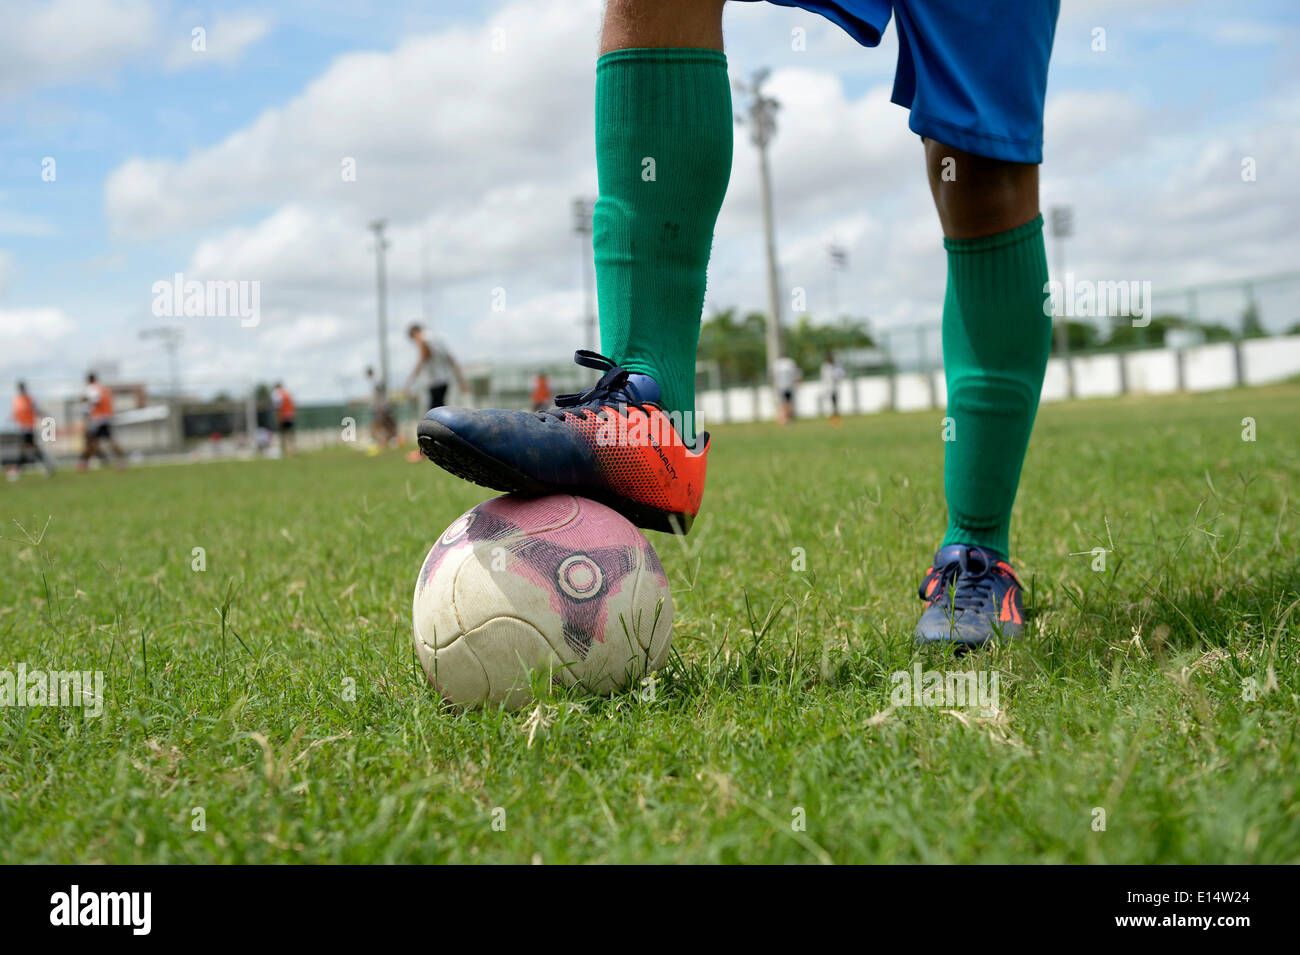 Soccer, kick off, boy holding a ball still with his foot, Fortaleza, Ceará, Brazil - Stock Image